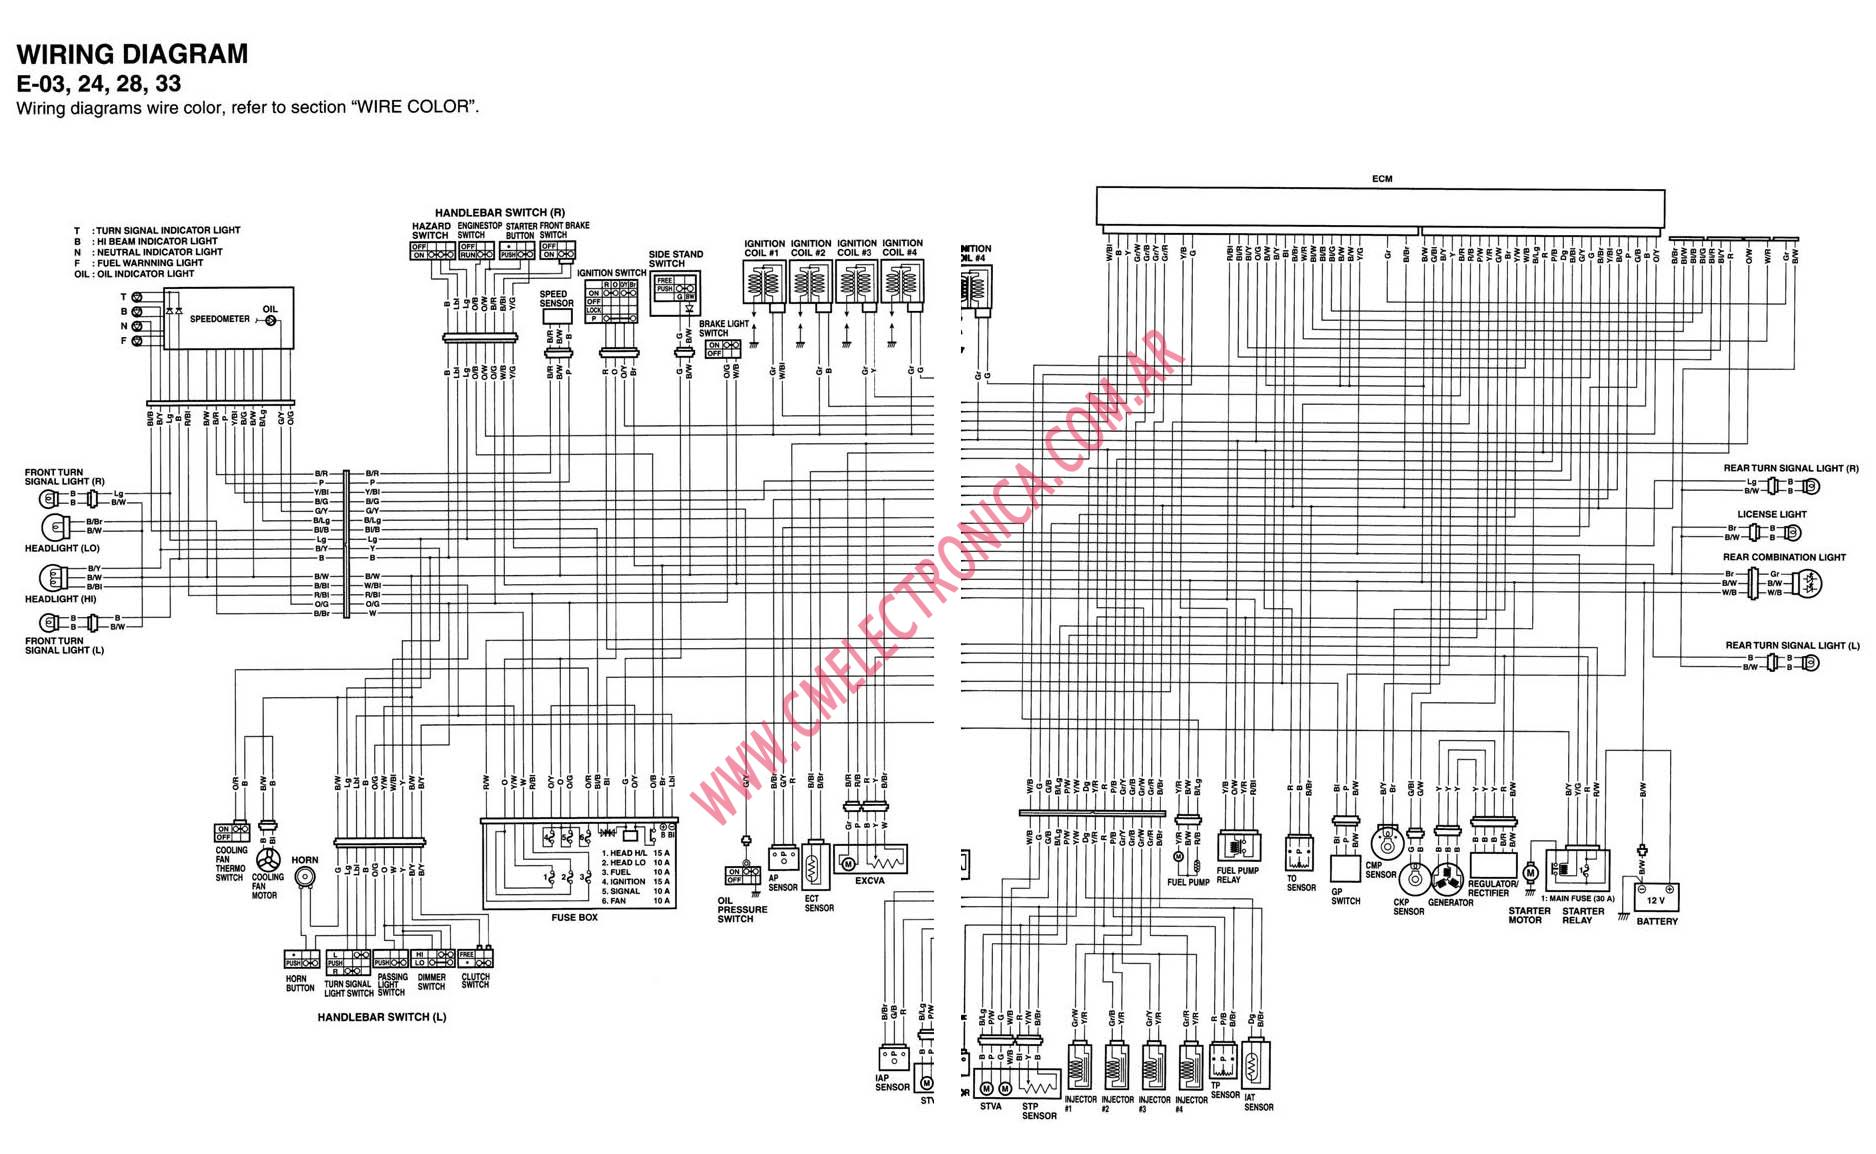 small resolution of 2006 gsxr wiring diagram wiring schematic 2007 gsxr 600 wiring diagram 2006 gsxr 750 wiring diagram